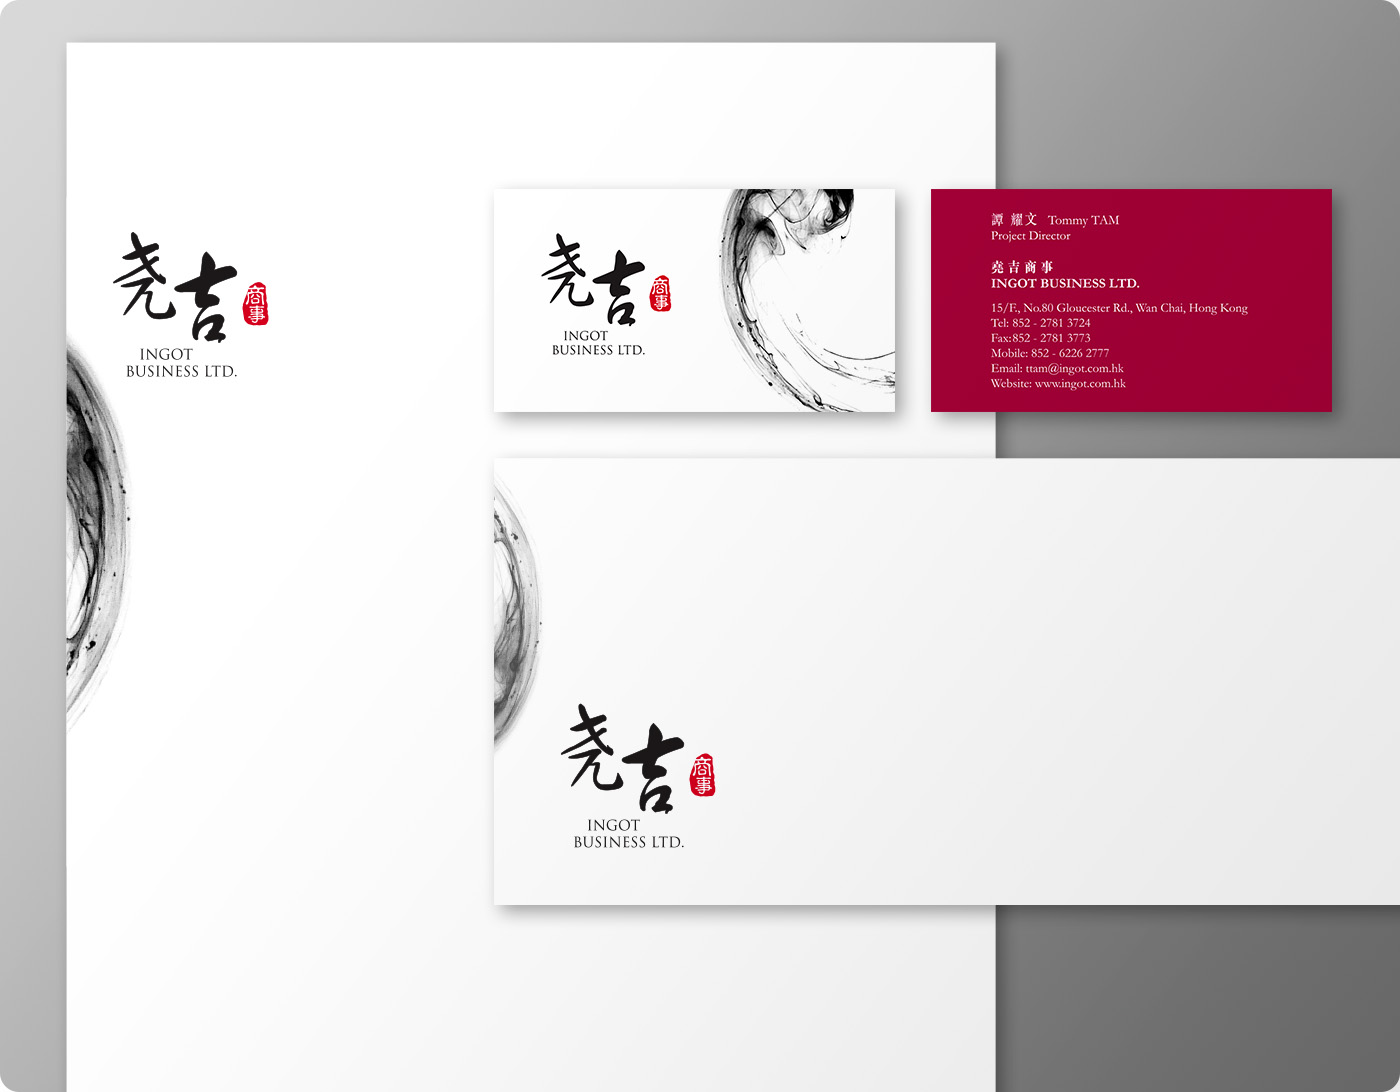 Ingot Business Limited-Corporate Identity (CIS)